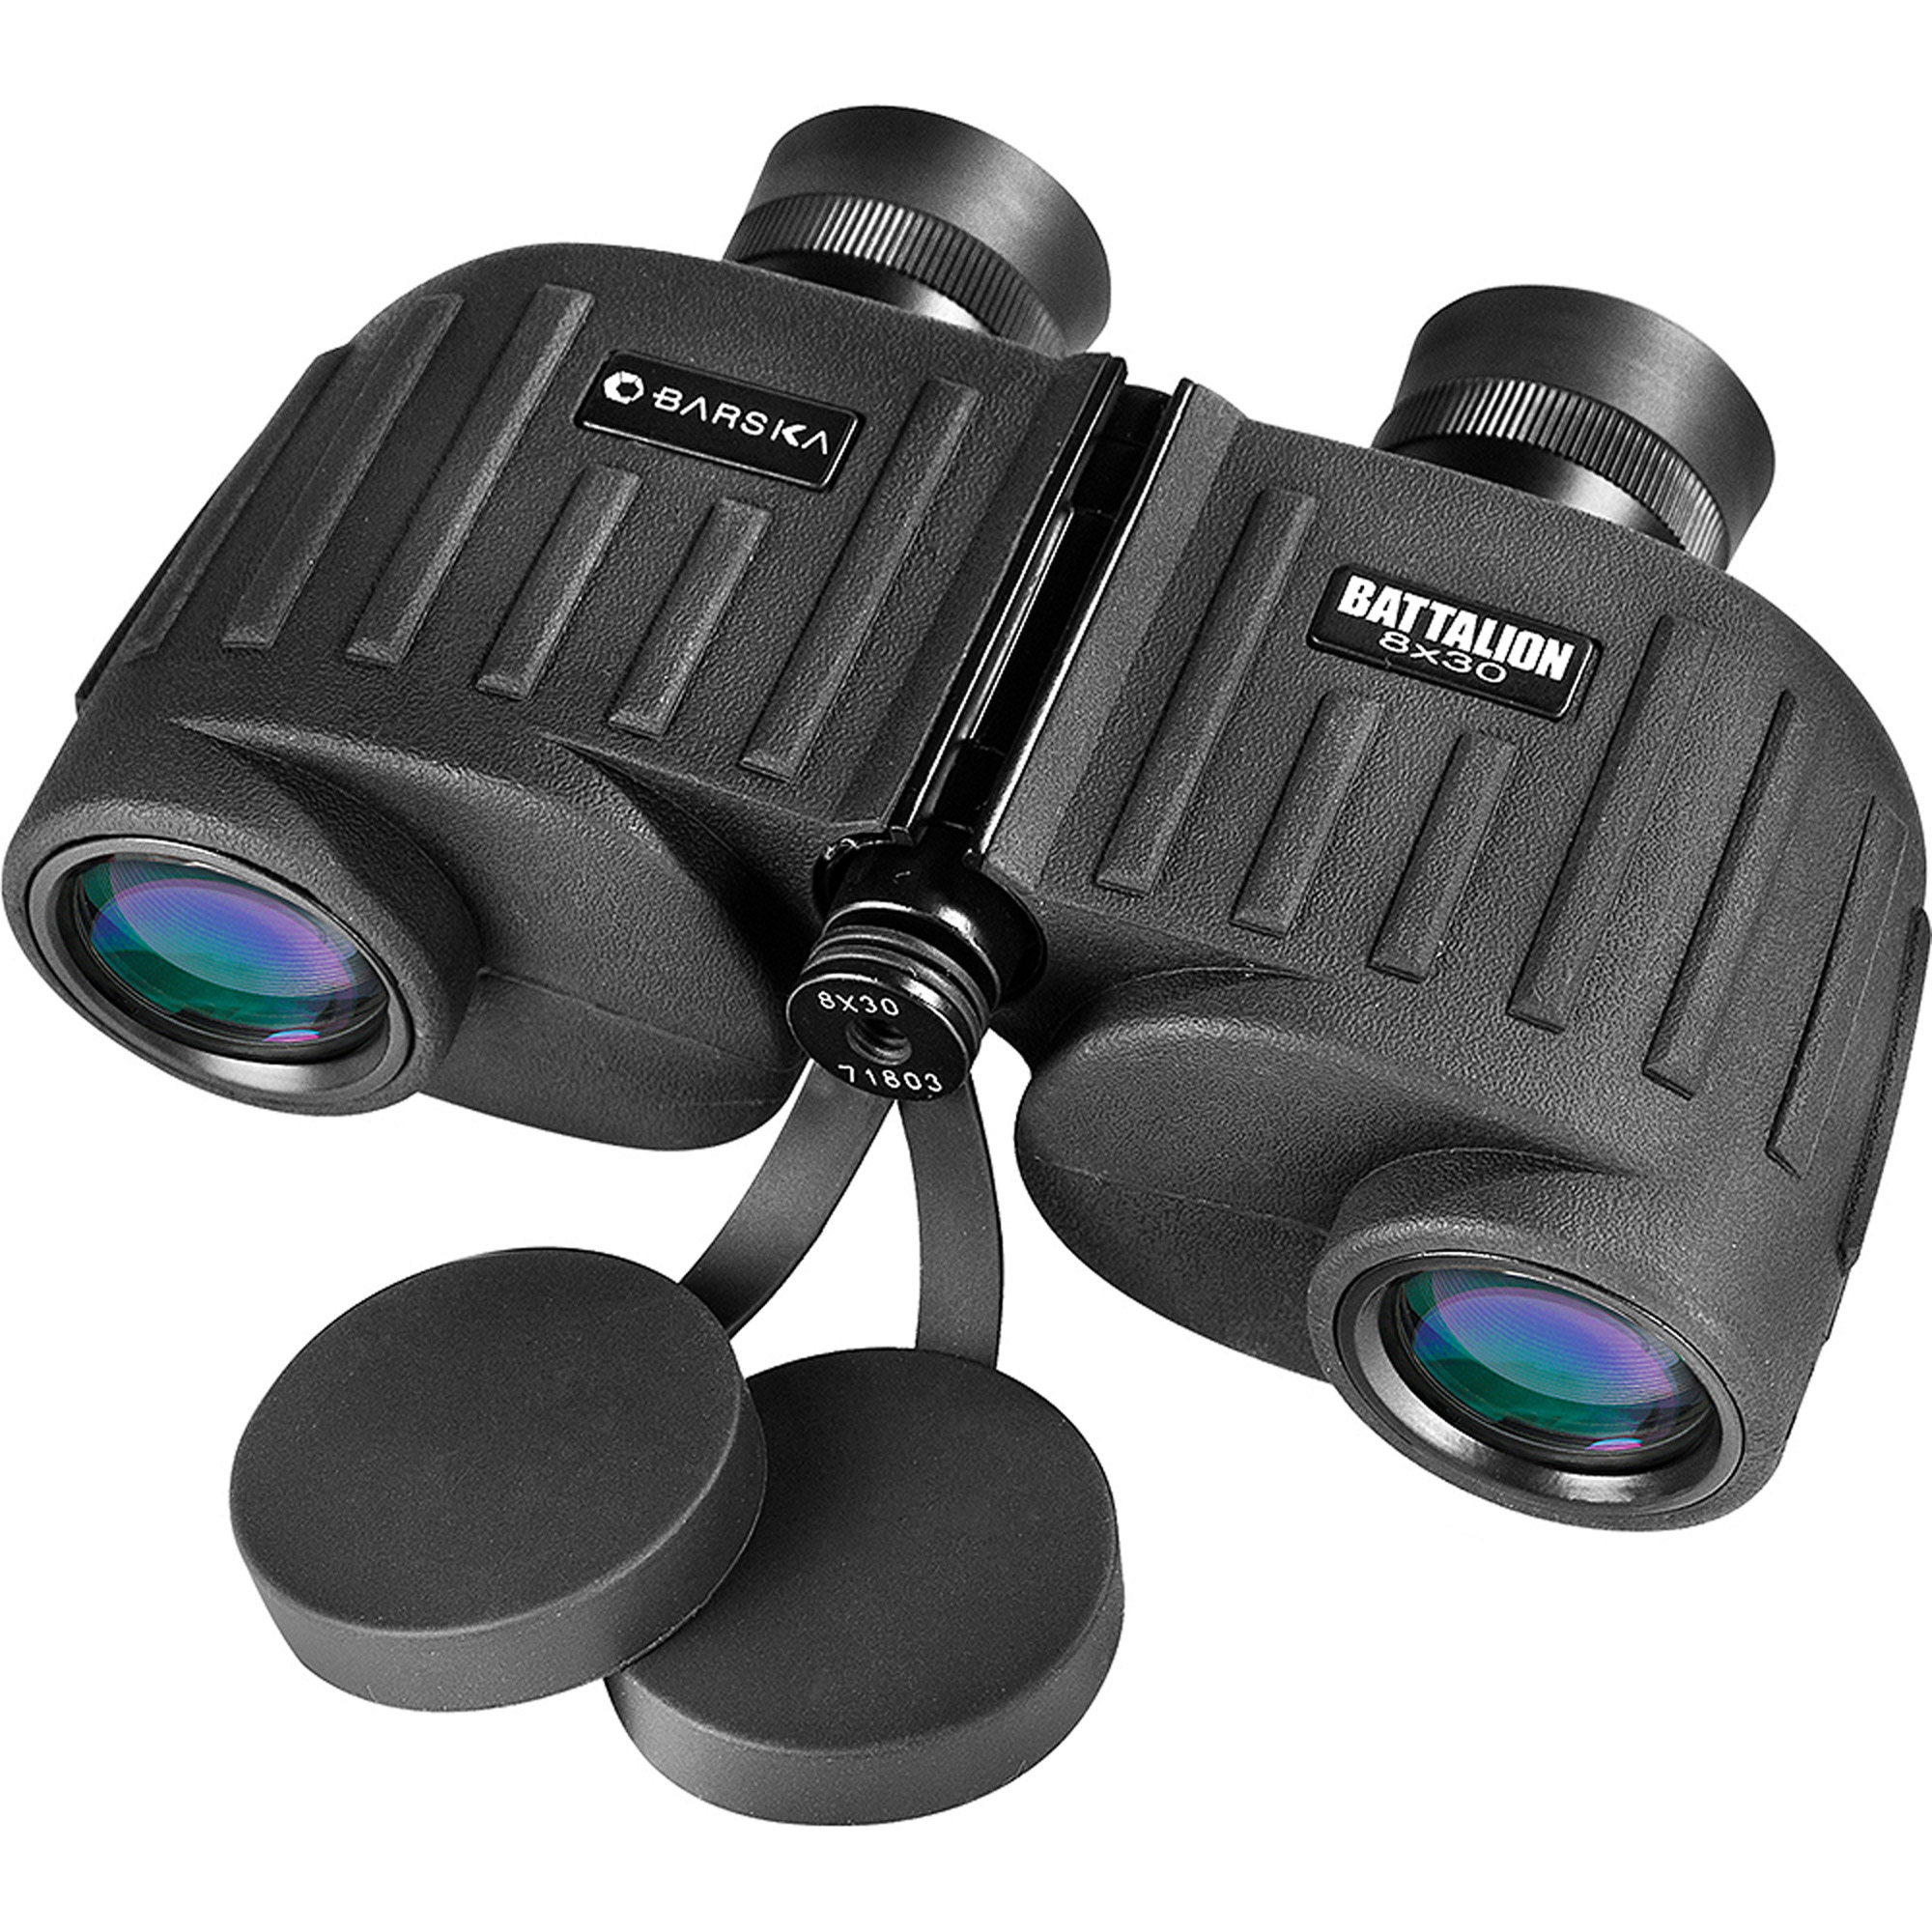 Barska Optics Battalion Binoculars, 8x30mm, Black